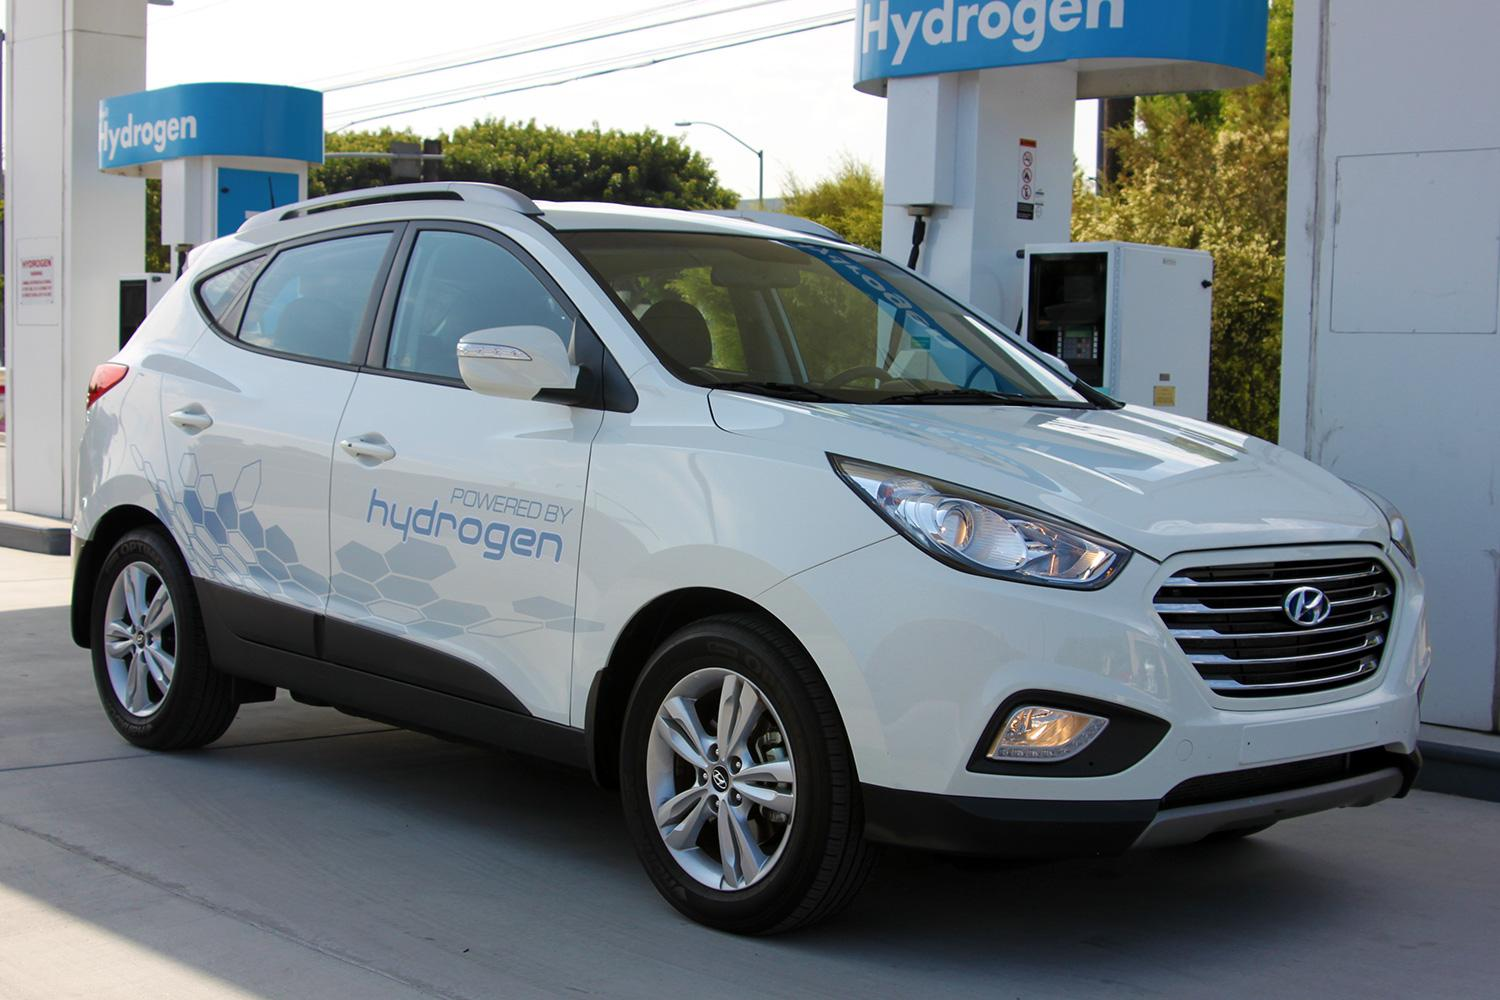 In Recent Hyundai News, The Tuscon Was The First Ever Vehicle To Be Made By  Hyundai In The Hydrogen Range Of Cars And It Made Its Grand Debut In Canada.